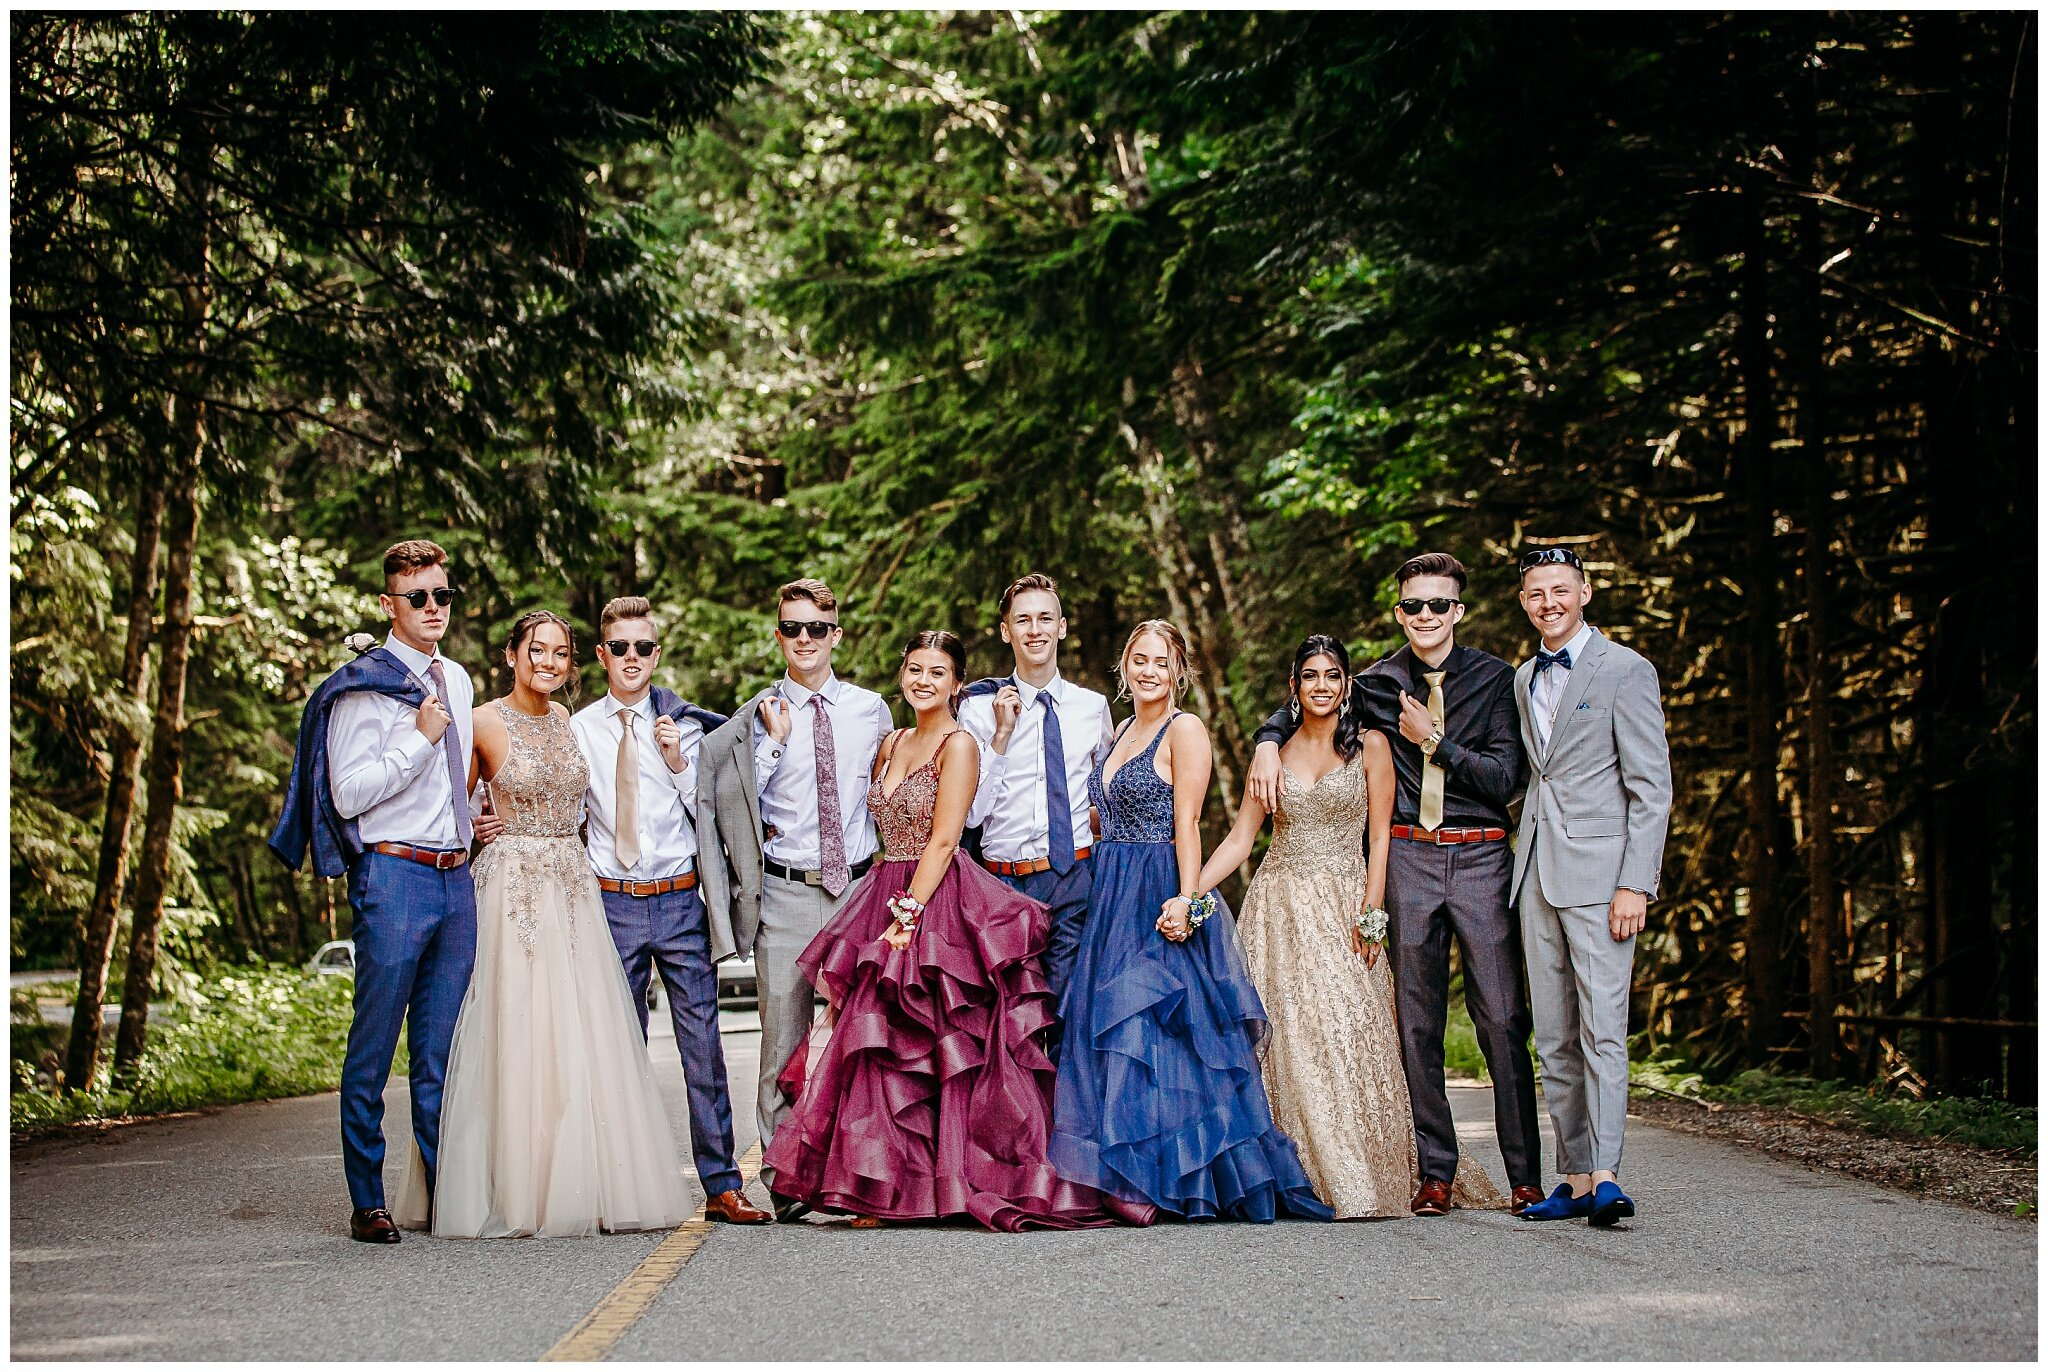 Abbotsford Highschool Prom Graduation Photographer 2019 Abbotsford fun bright_0017.jpg